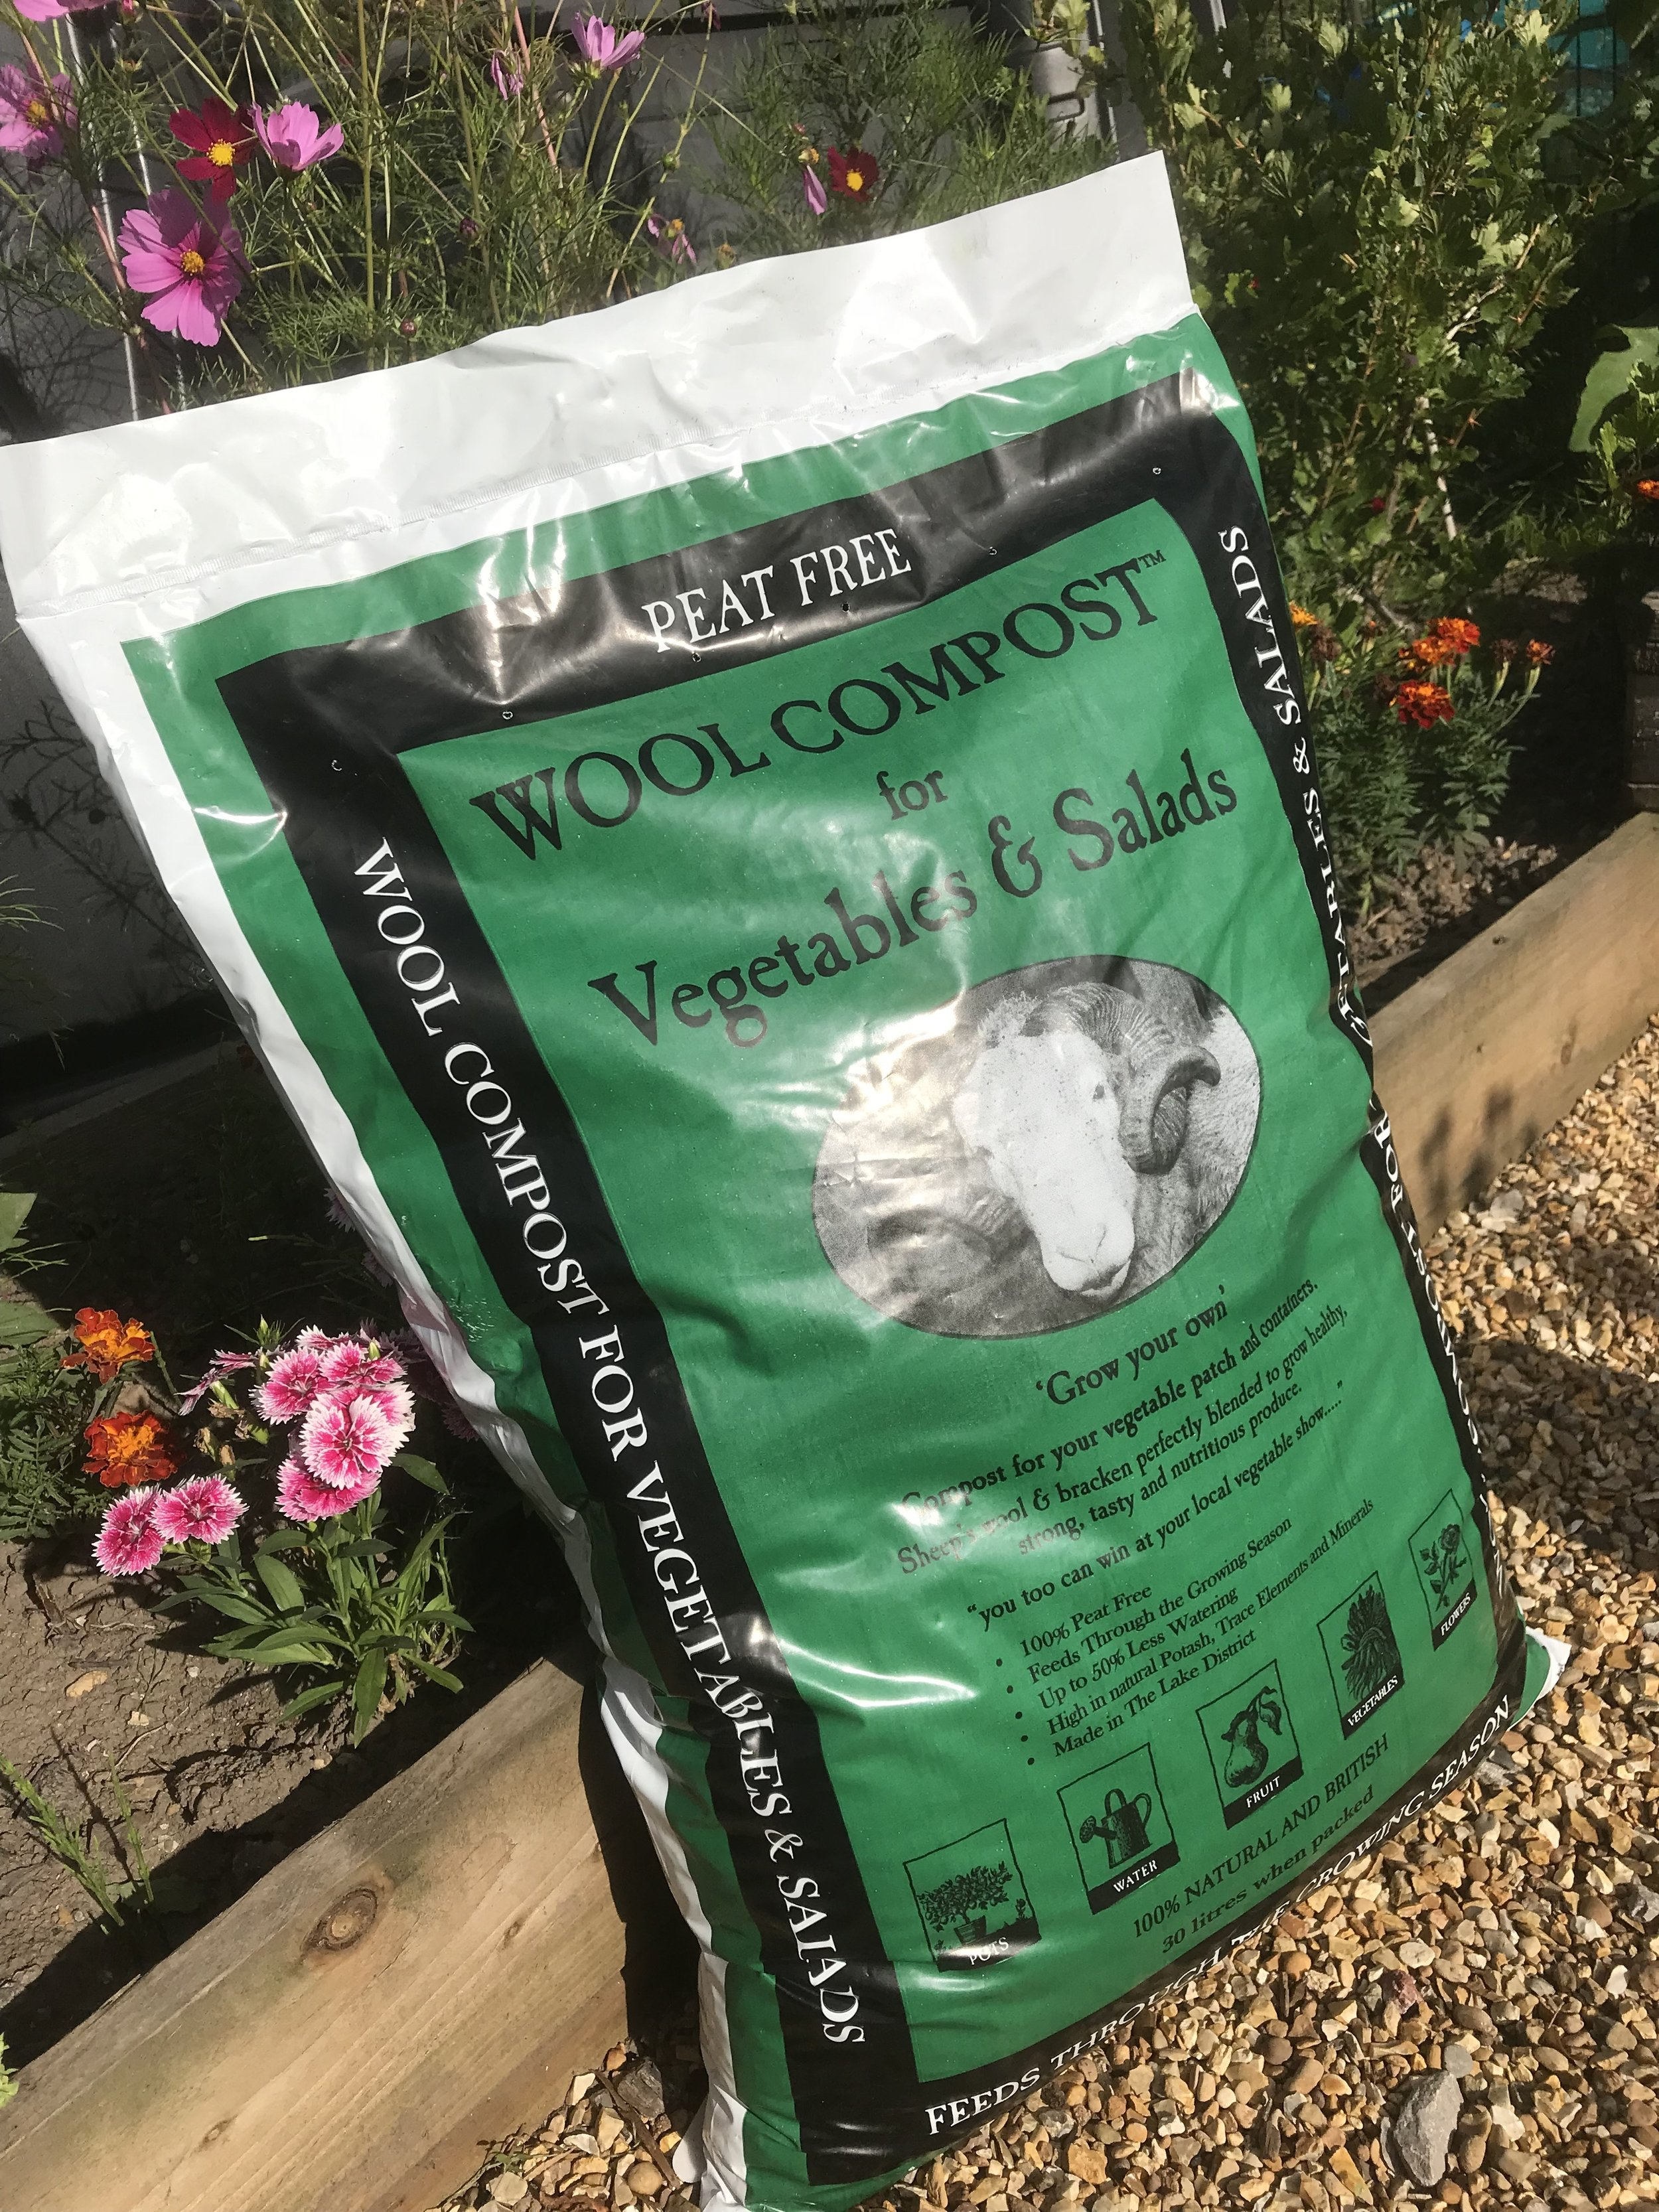 Wool Compost for Vegetables and Salads - £7.95 - Perfect for